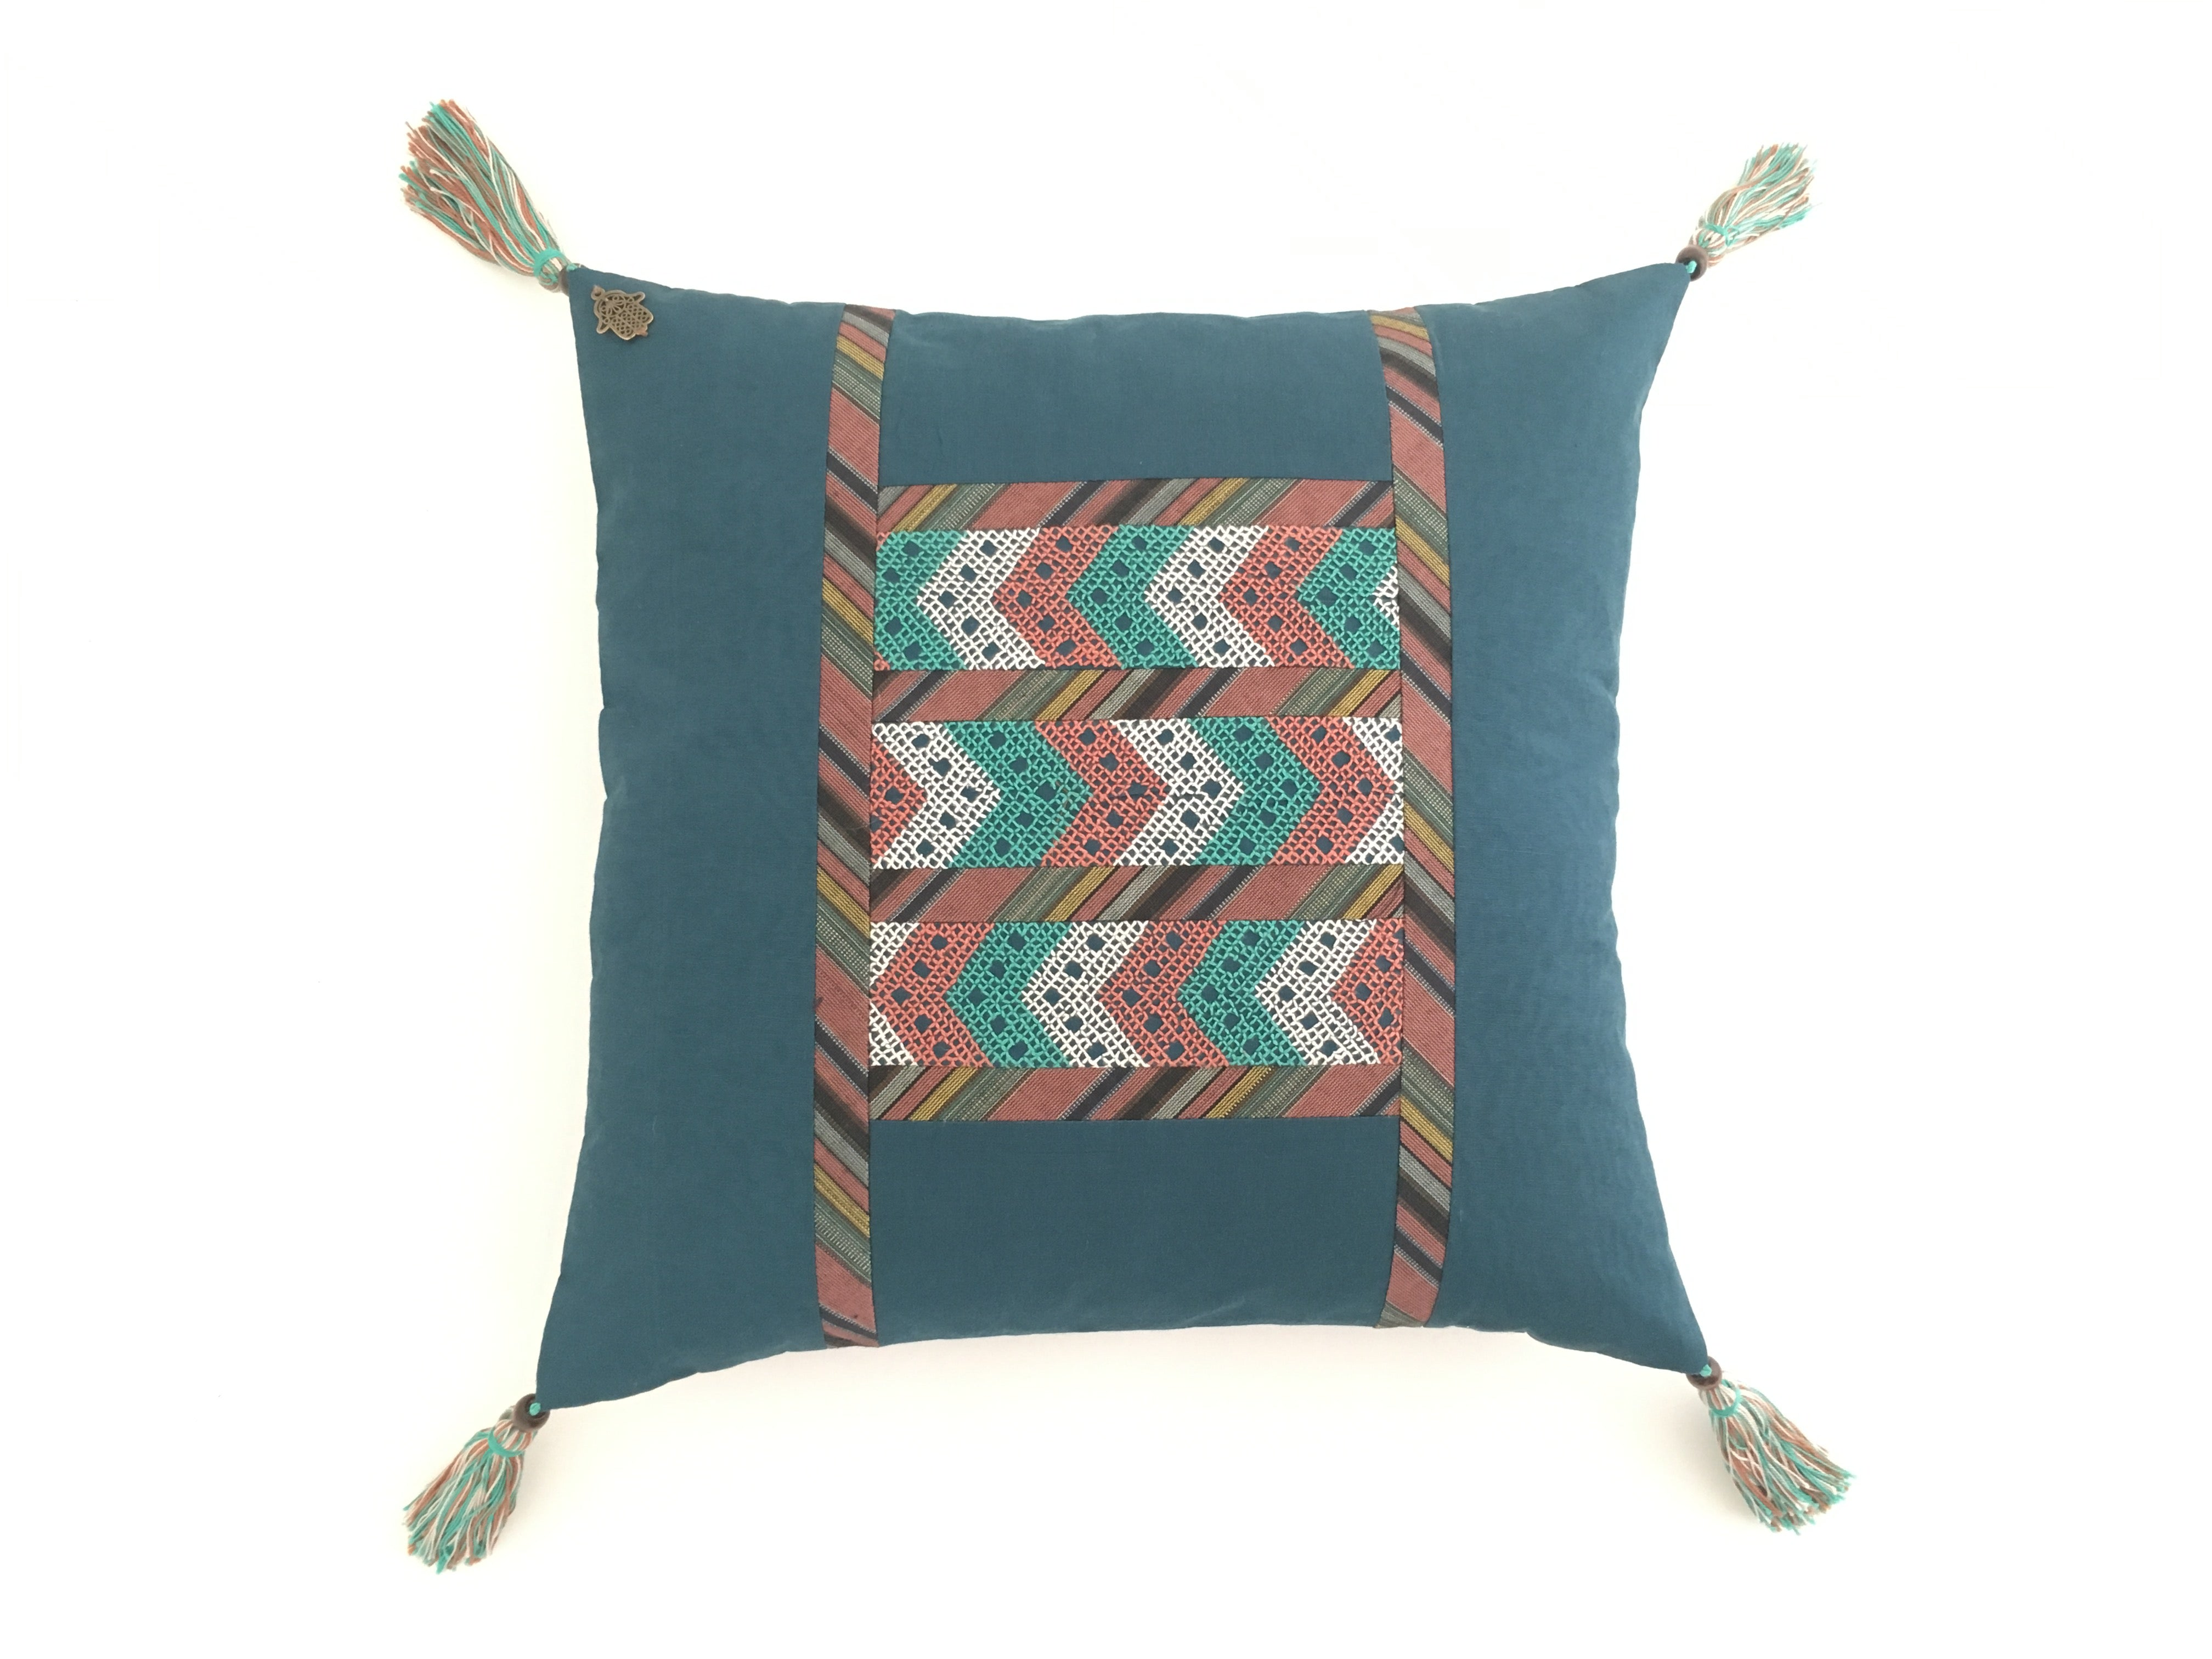 The Aqaba Throw Pillow